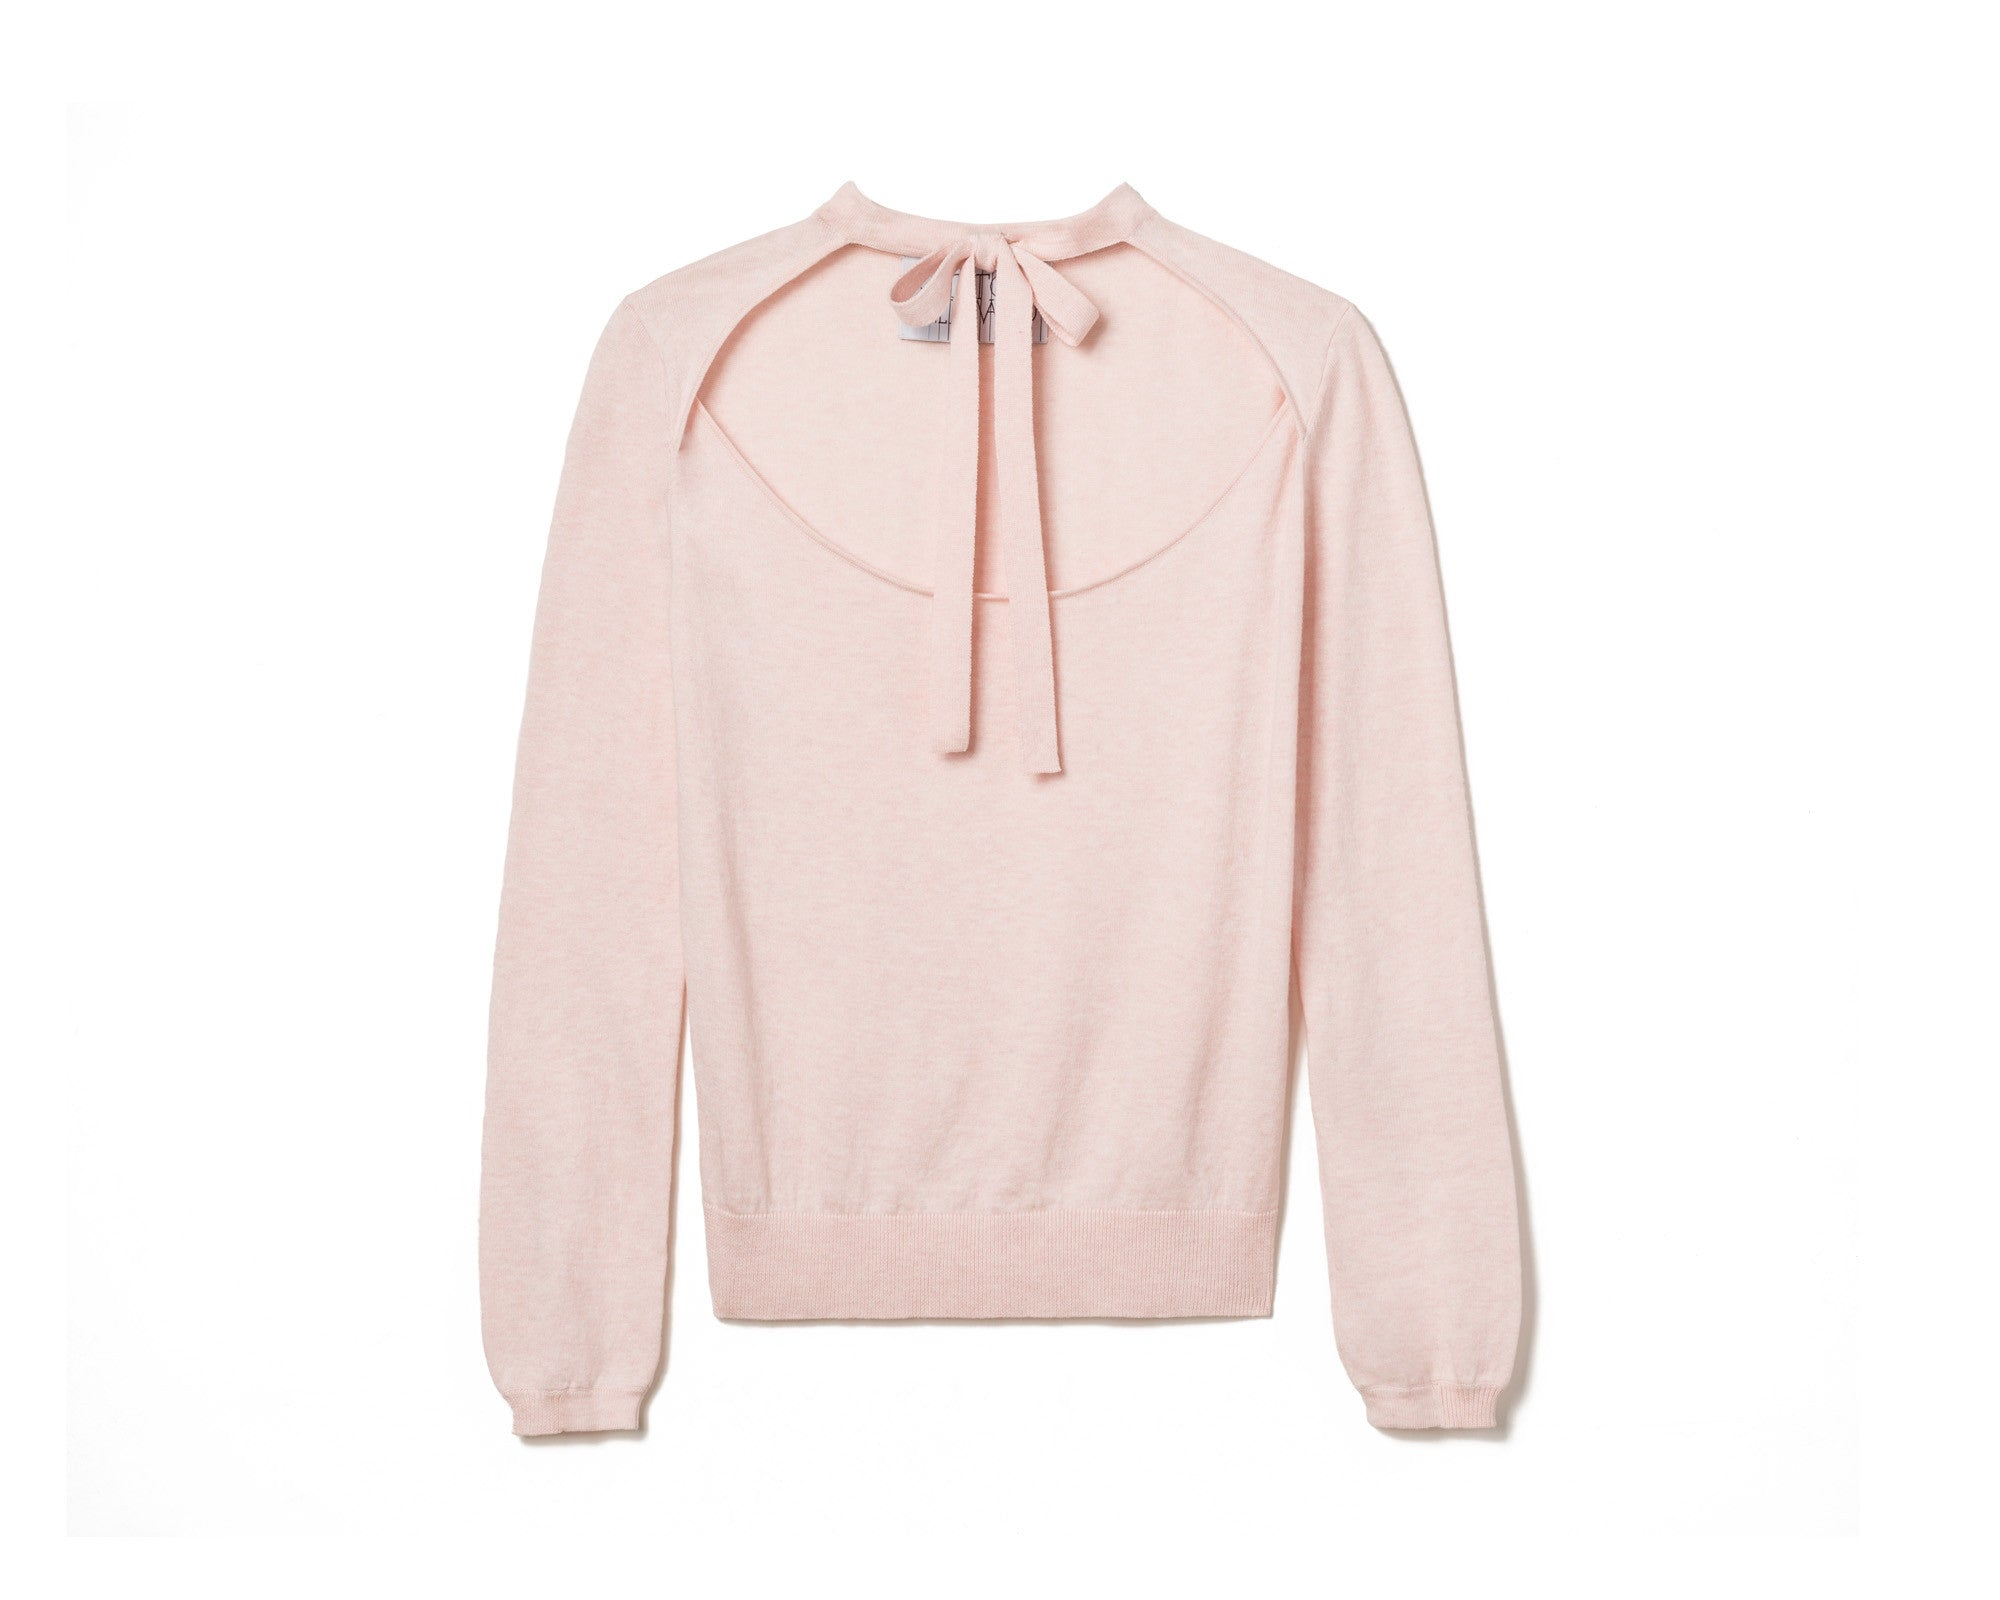 TIE-NECK DÉCOLLETÉ SWEATER – PALE PINK